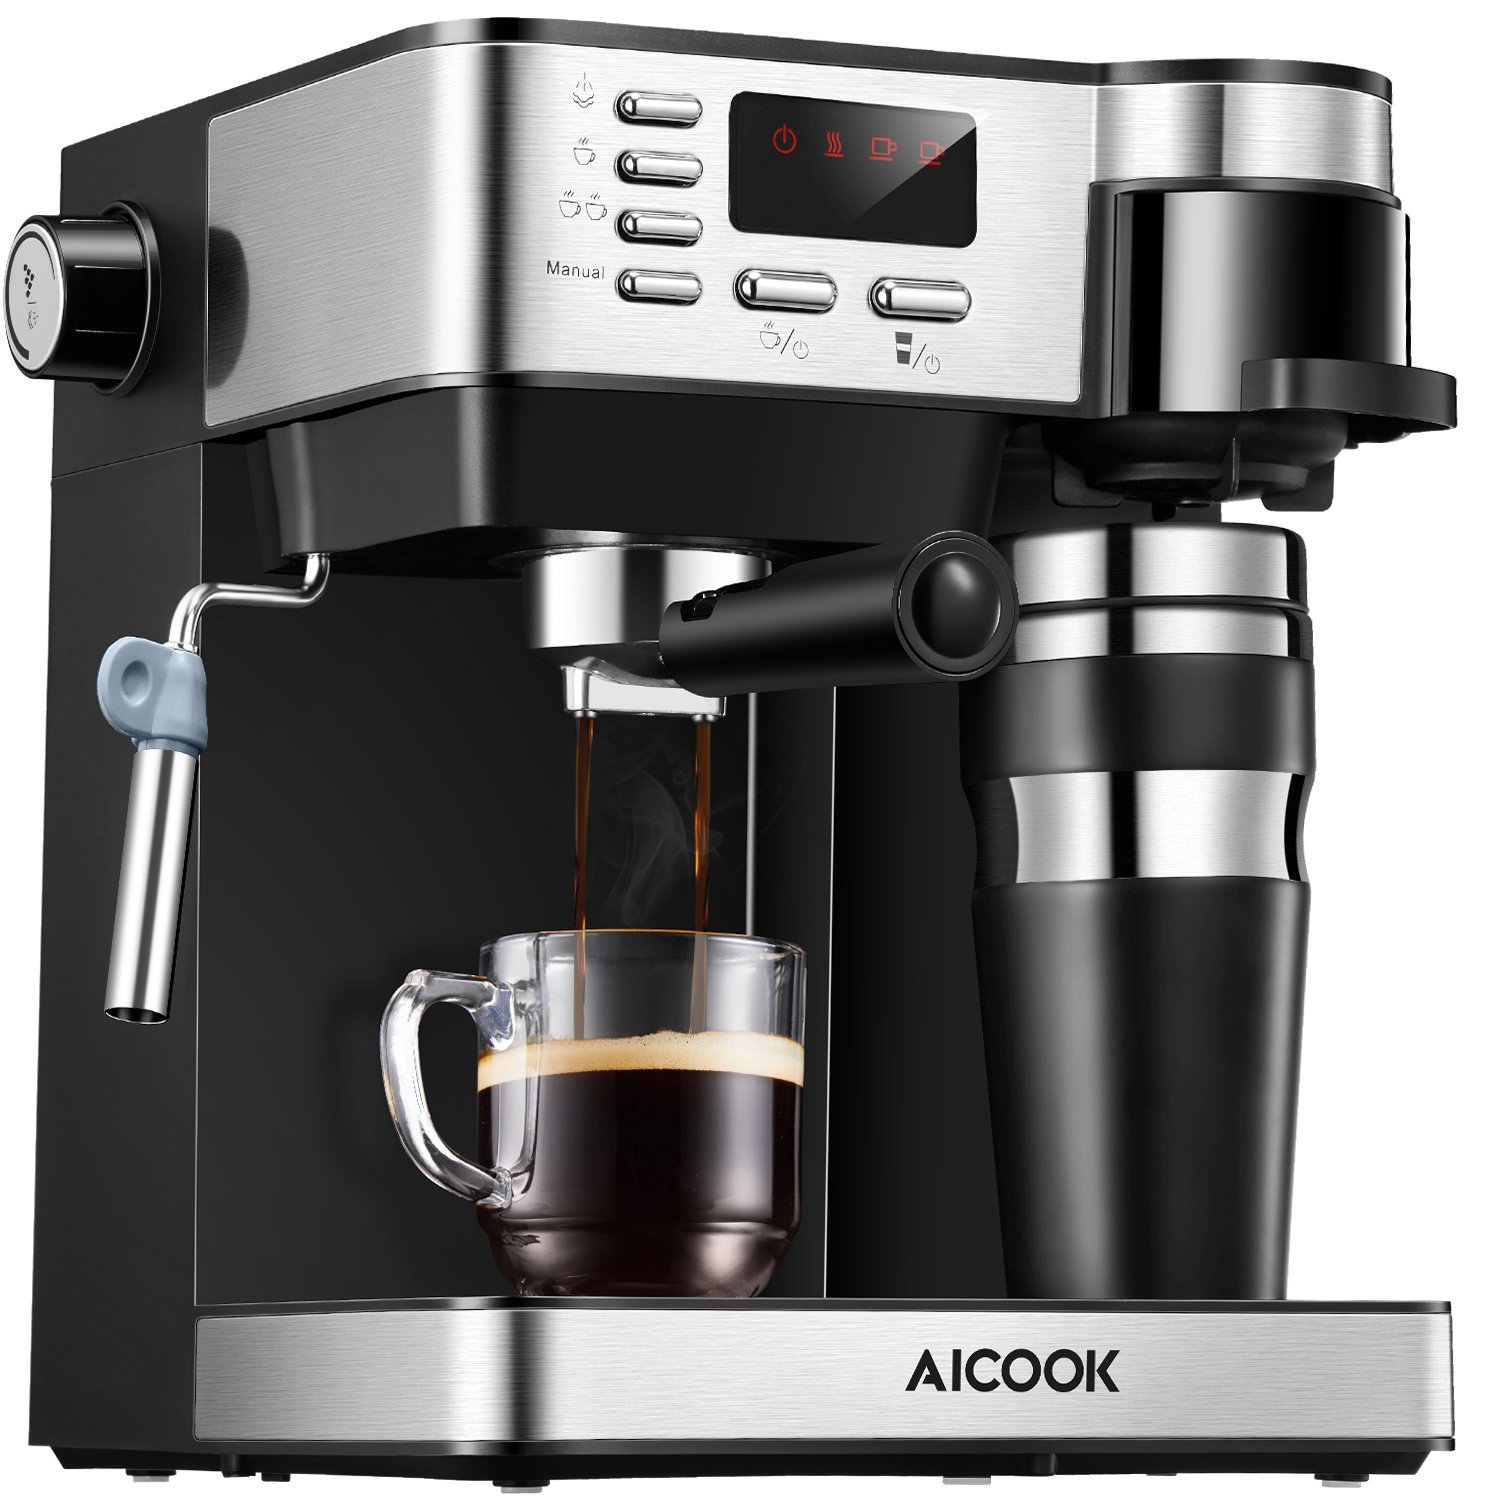 Aicook Espresso and Coffee Machine, 3 in 1 Combination 15Bar Espresso Machine and Single Serve Coffee Maker With Coffee Mug, Milk Frother for Cappuccino and Latte, Black by Aicook